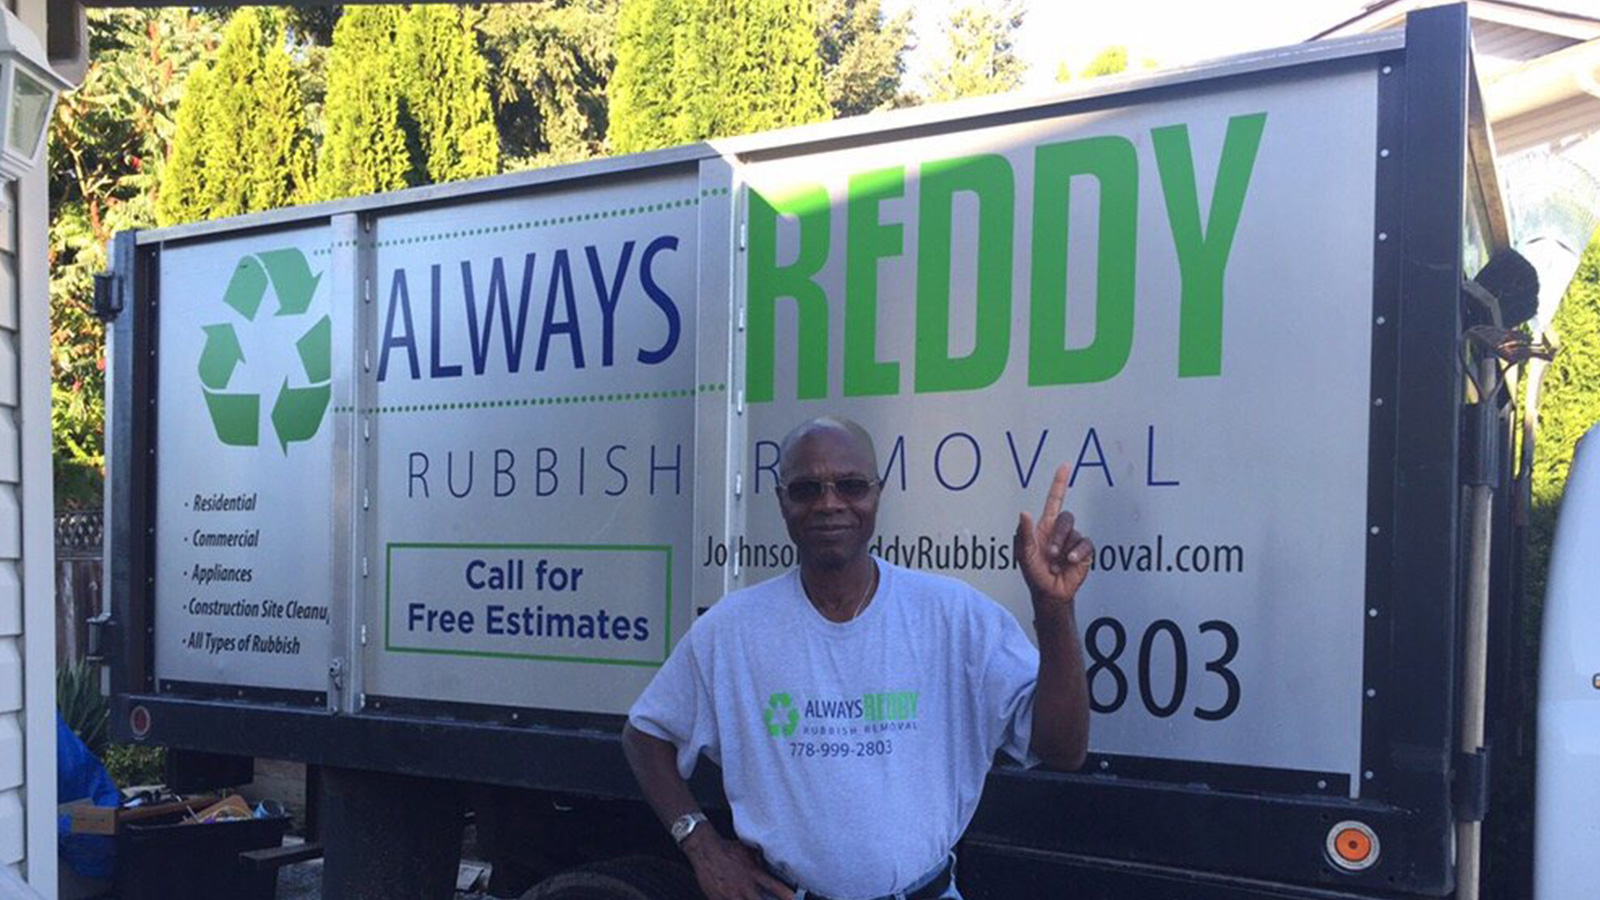 Burnaby Junk Removal Services - Always Readdy Rubbish Removal